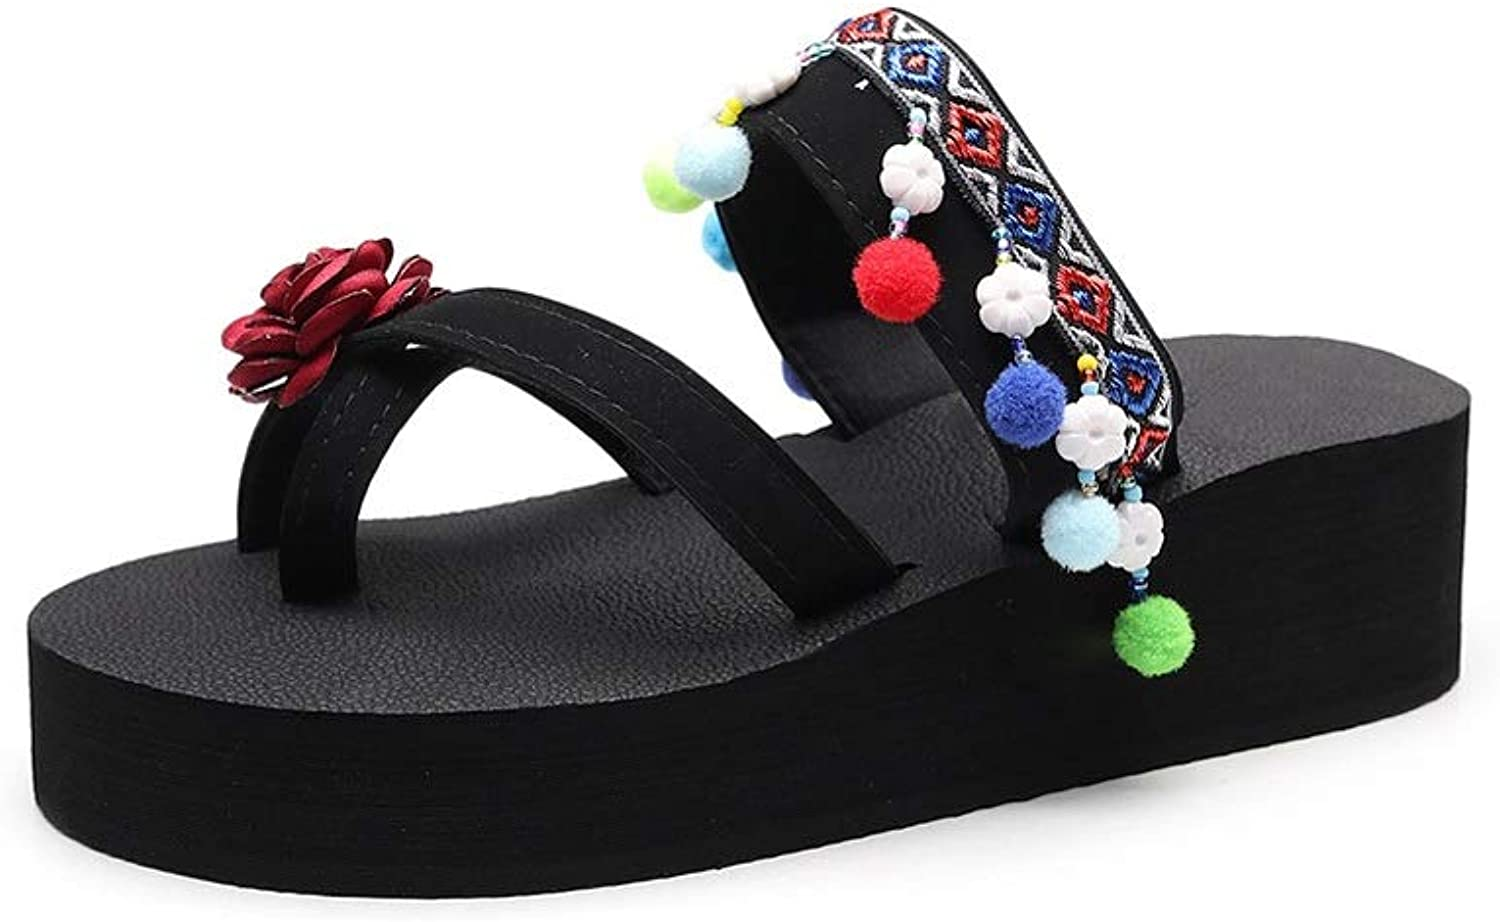 Ailj Women's Summer Sandals, Large Size Sandals Ethnic Style Retro Flip-Flops Outdoor Skid Network Red Man Toe Beach shoes Black